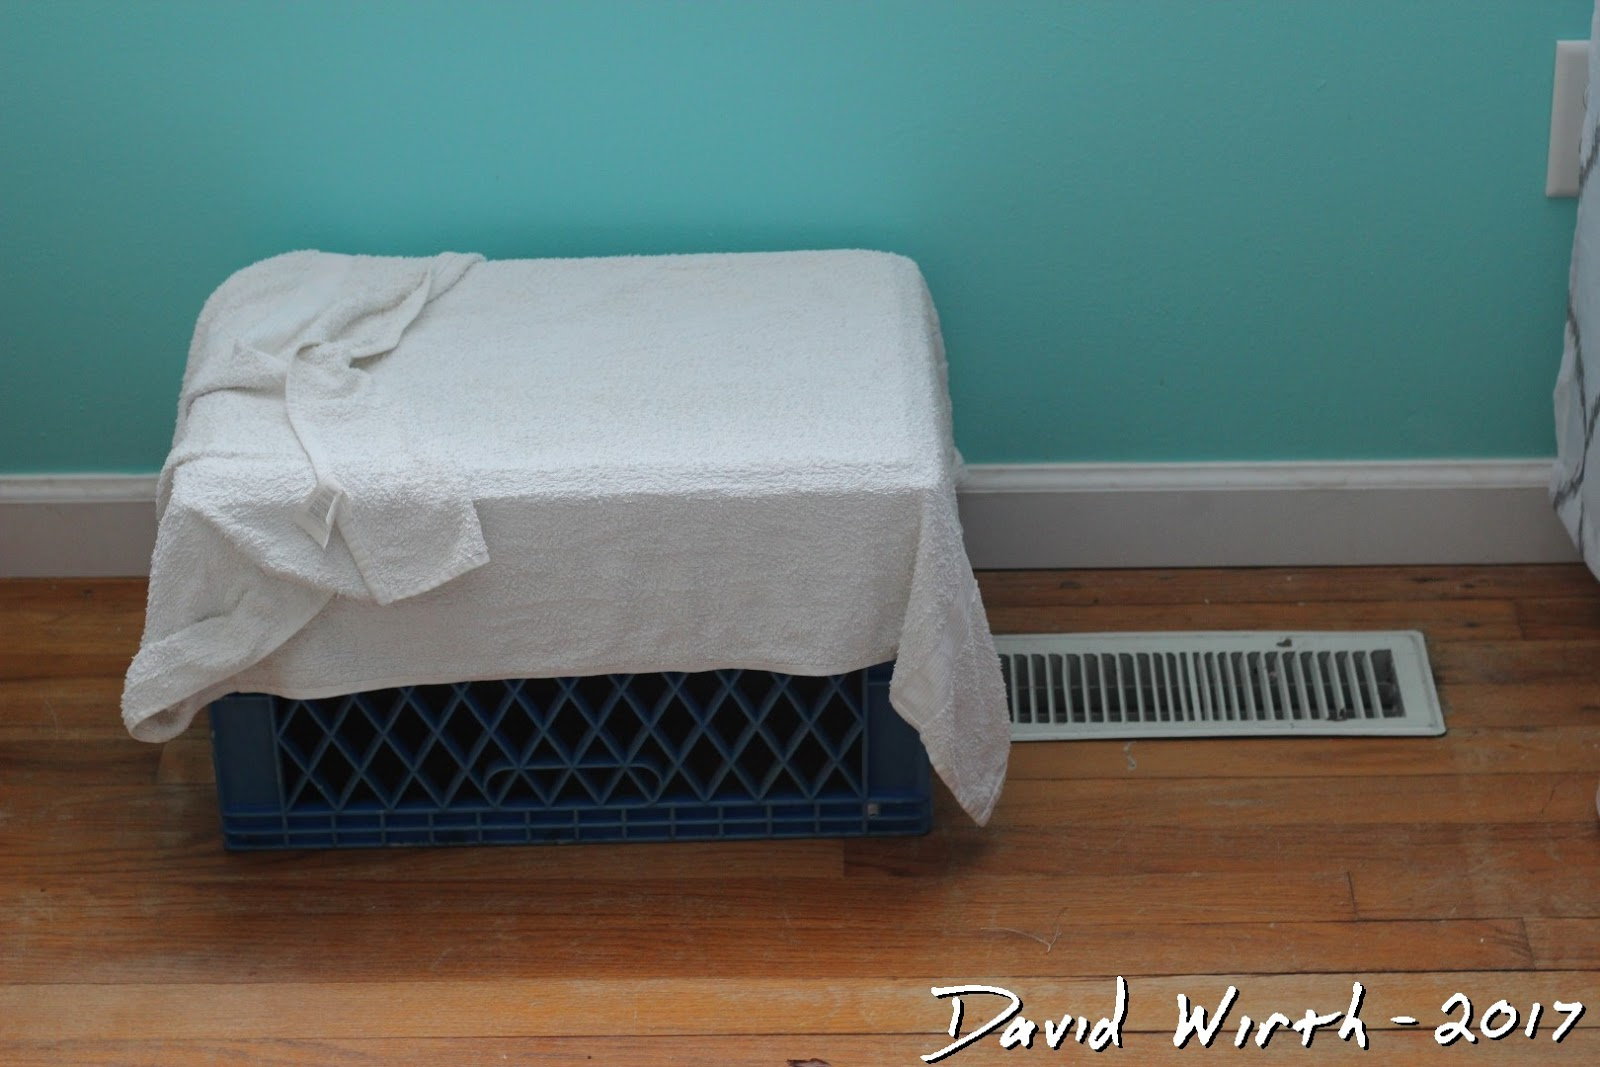 Free Humidifier in Winter - Towel Over Heat Vent